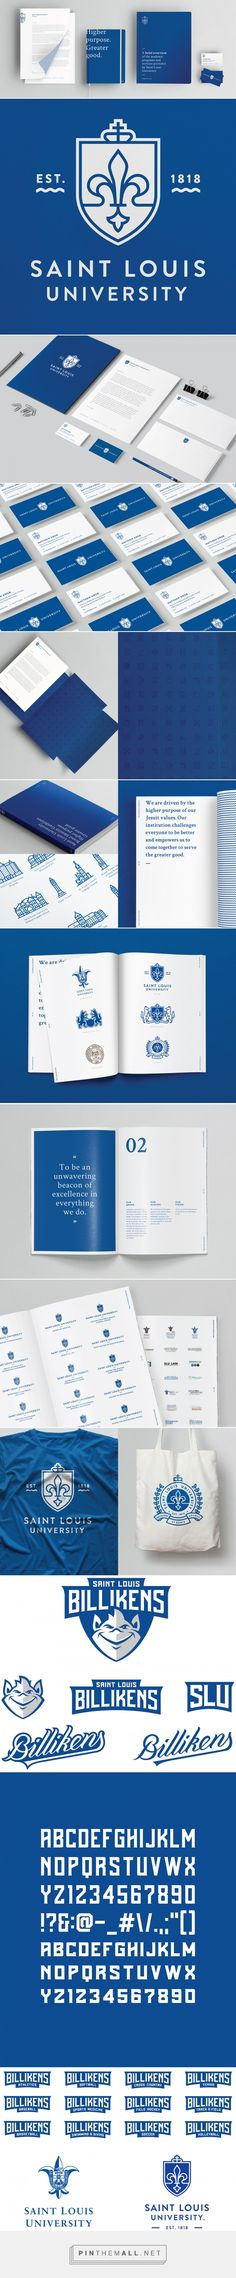 Brand New: Follow-up: New Identity for Saint Louis University by Olson - created via http://pinthemall.net